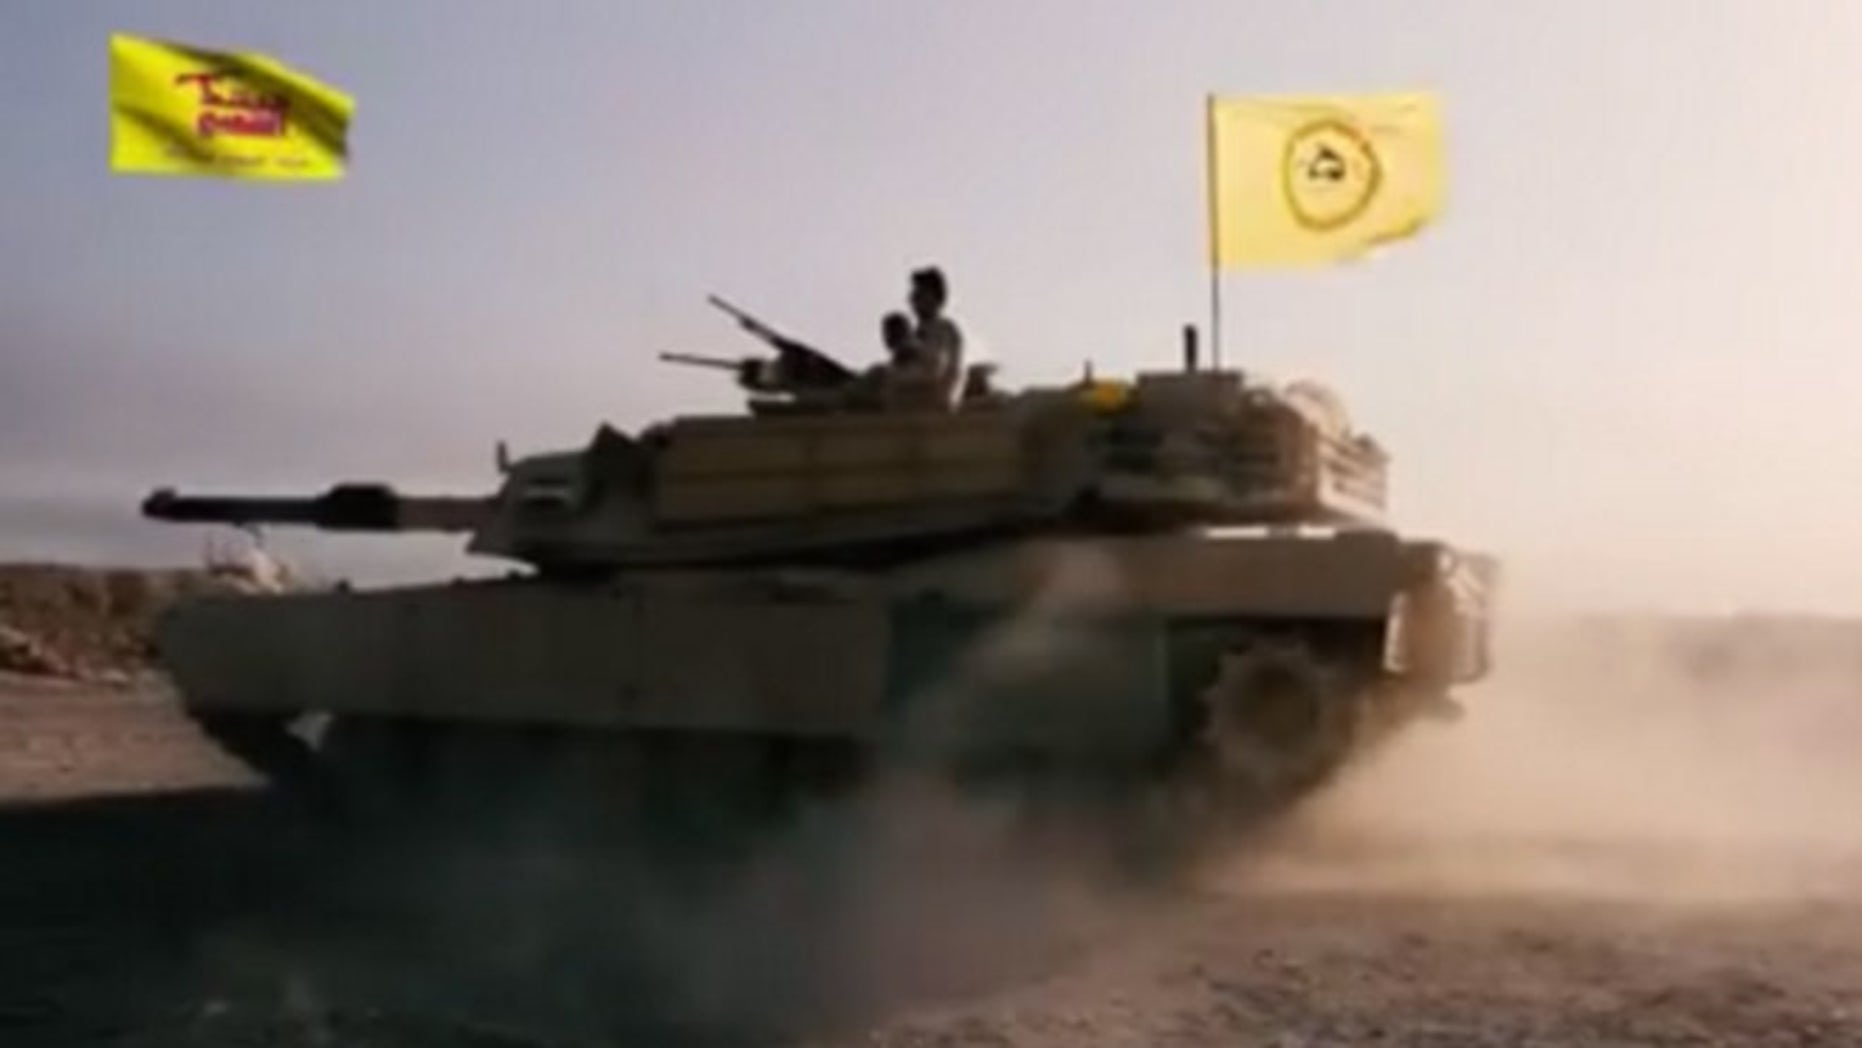 A video appeared online that purports to show a US-made M1 Abrams tank being used by an Iranian-back militia.